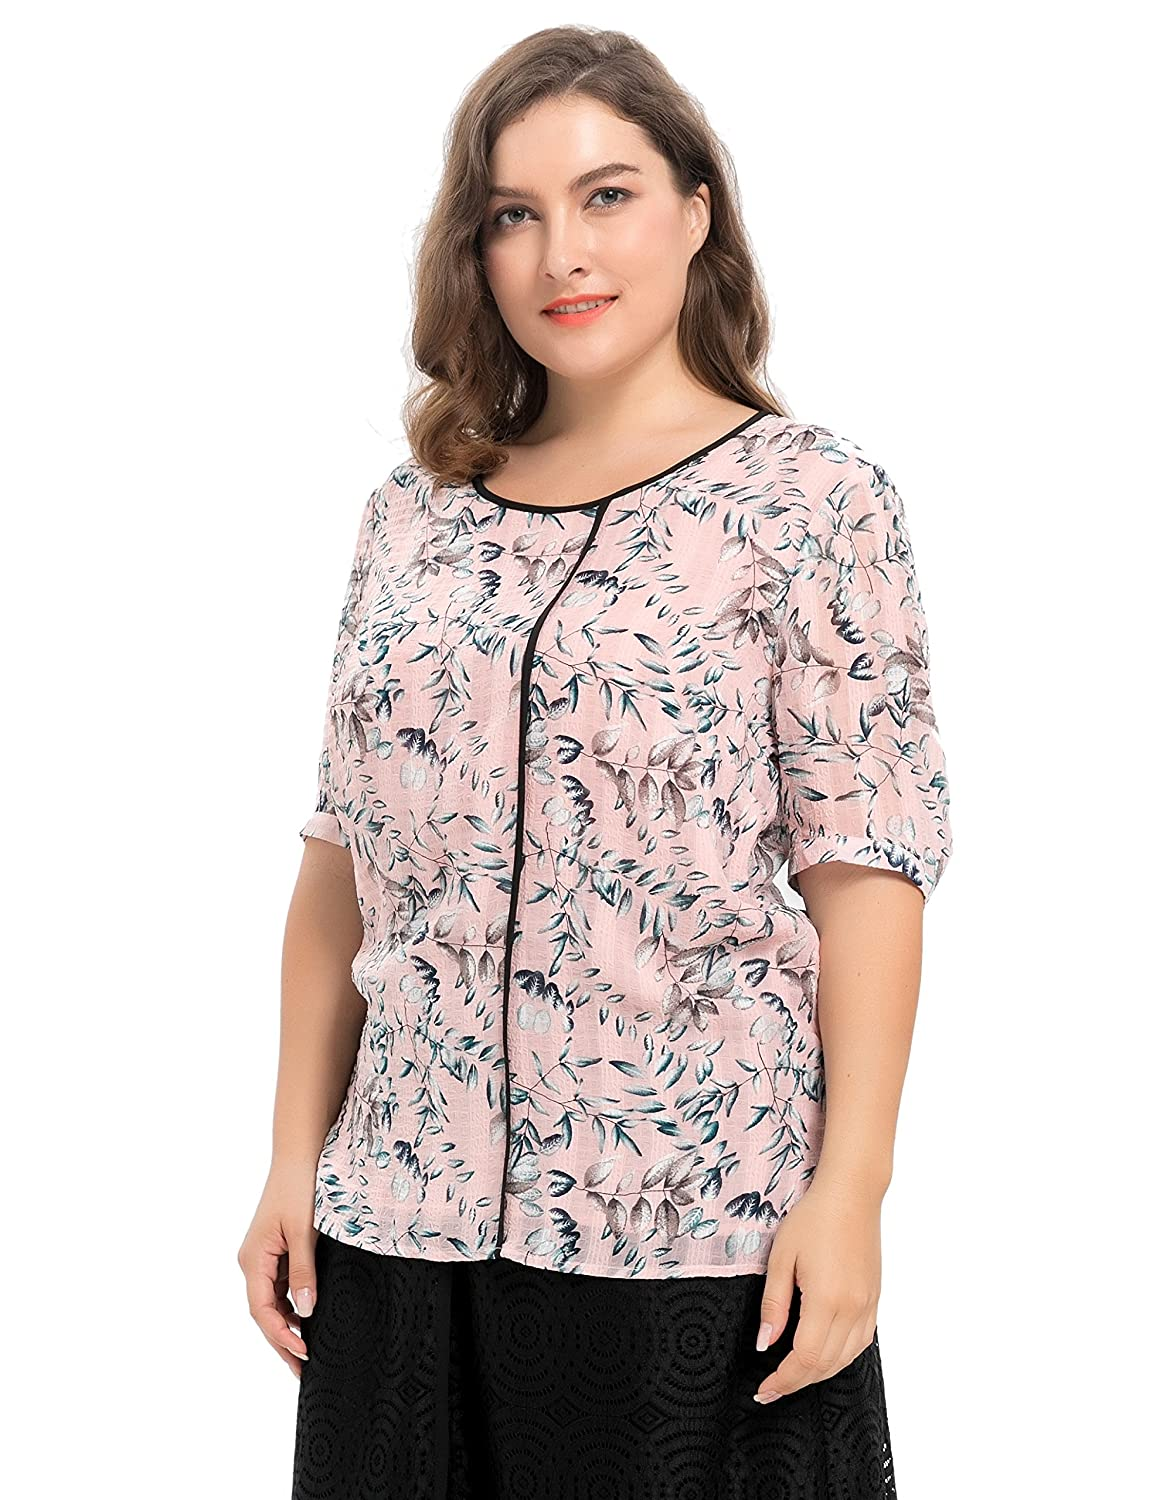 084fe155a7f72 Chicwe Women s Plus Size Lined Leaf Printed Dobby Chiffon Top - Casual and Work  Blouse 1X at Amazon Women s Clothing store